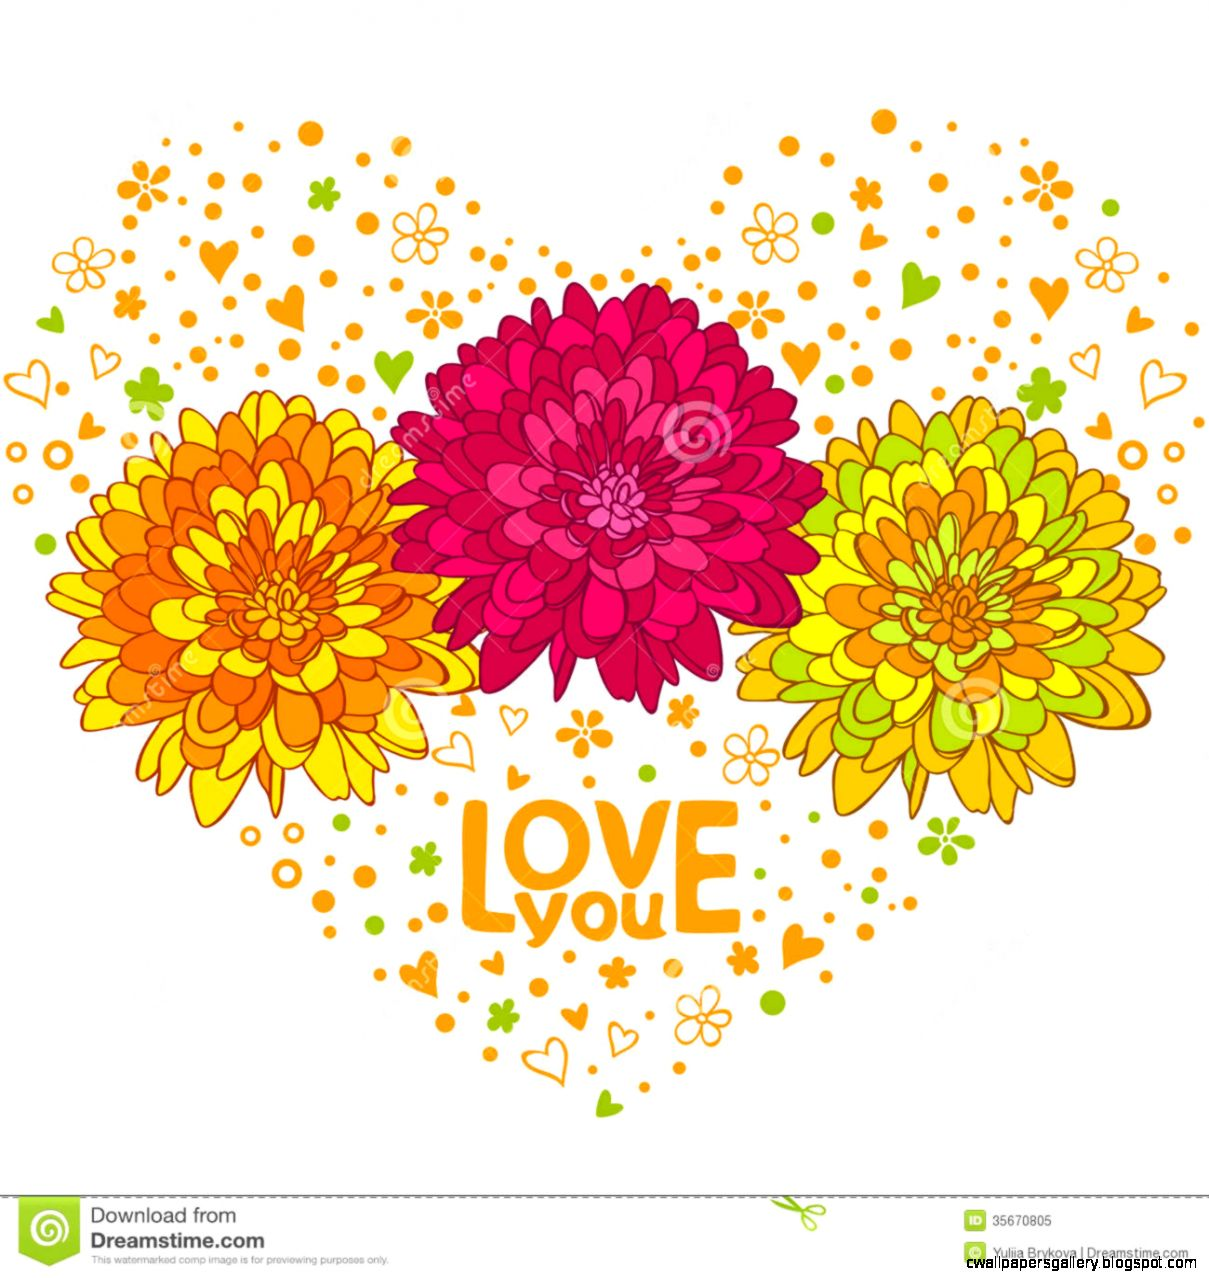 Flowers Hearts Royalty Free Stock Photo   Image 35670805